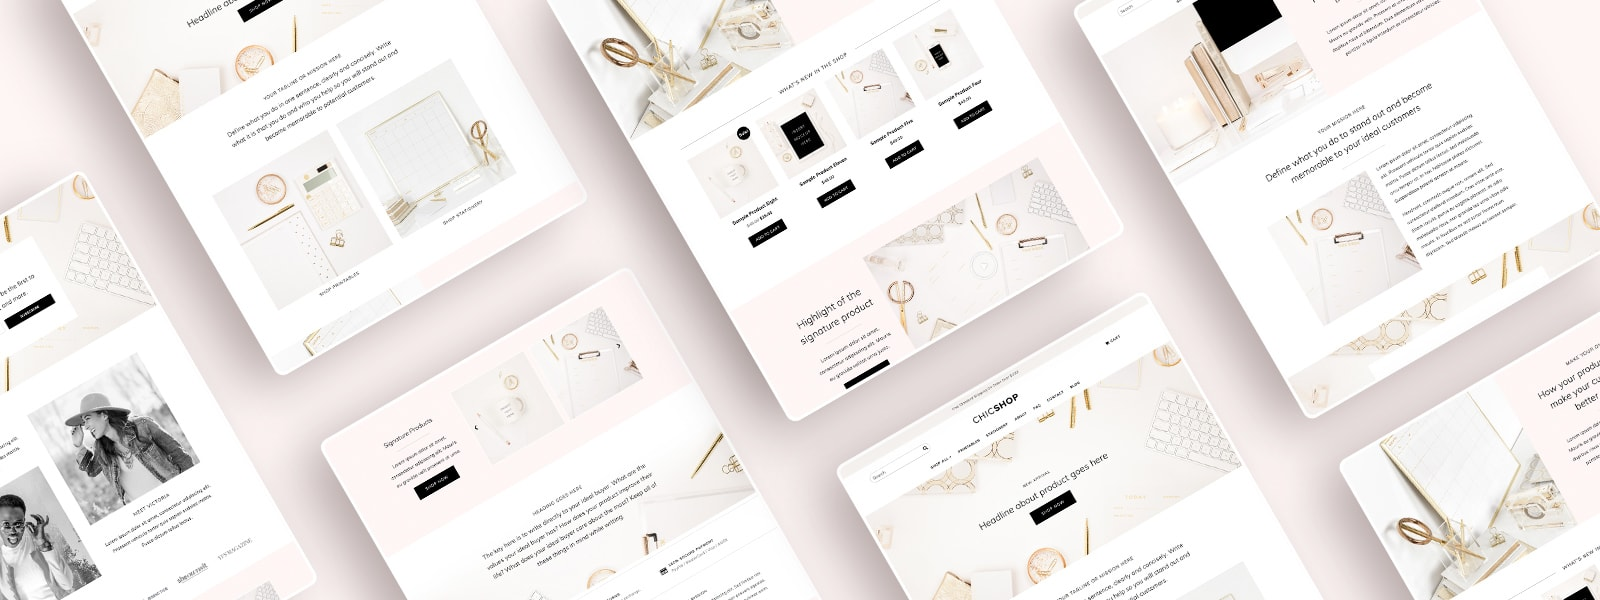 Elementor Website Template | ChicShop WooCommerce WordPress Theme for Online Shop